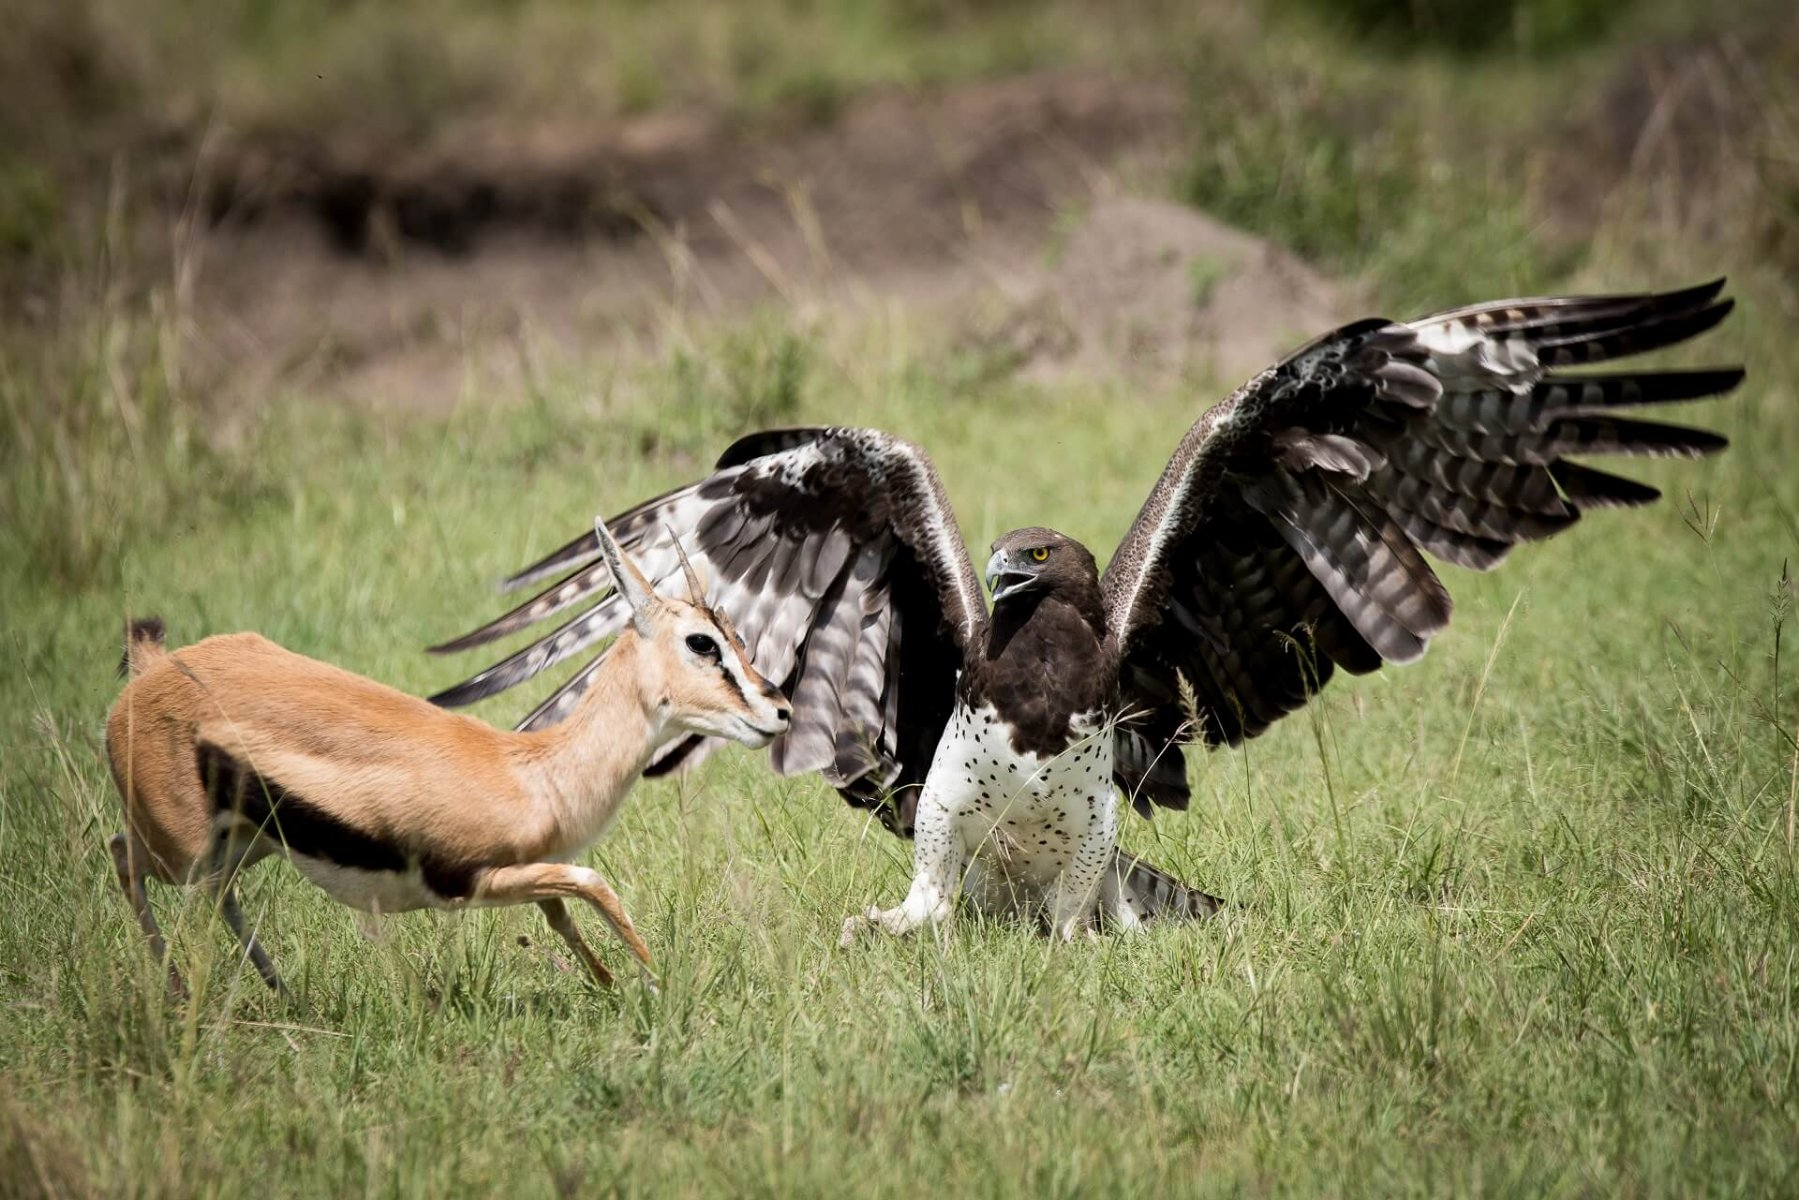 Lack of wild prey is a growing problem for the Martial Eagle © Dennis Stewart / Shutterstock